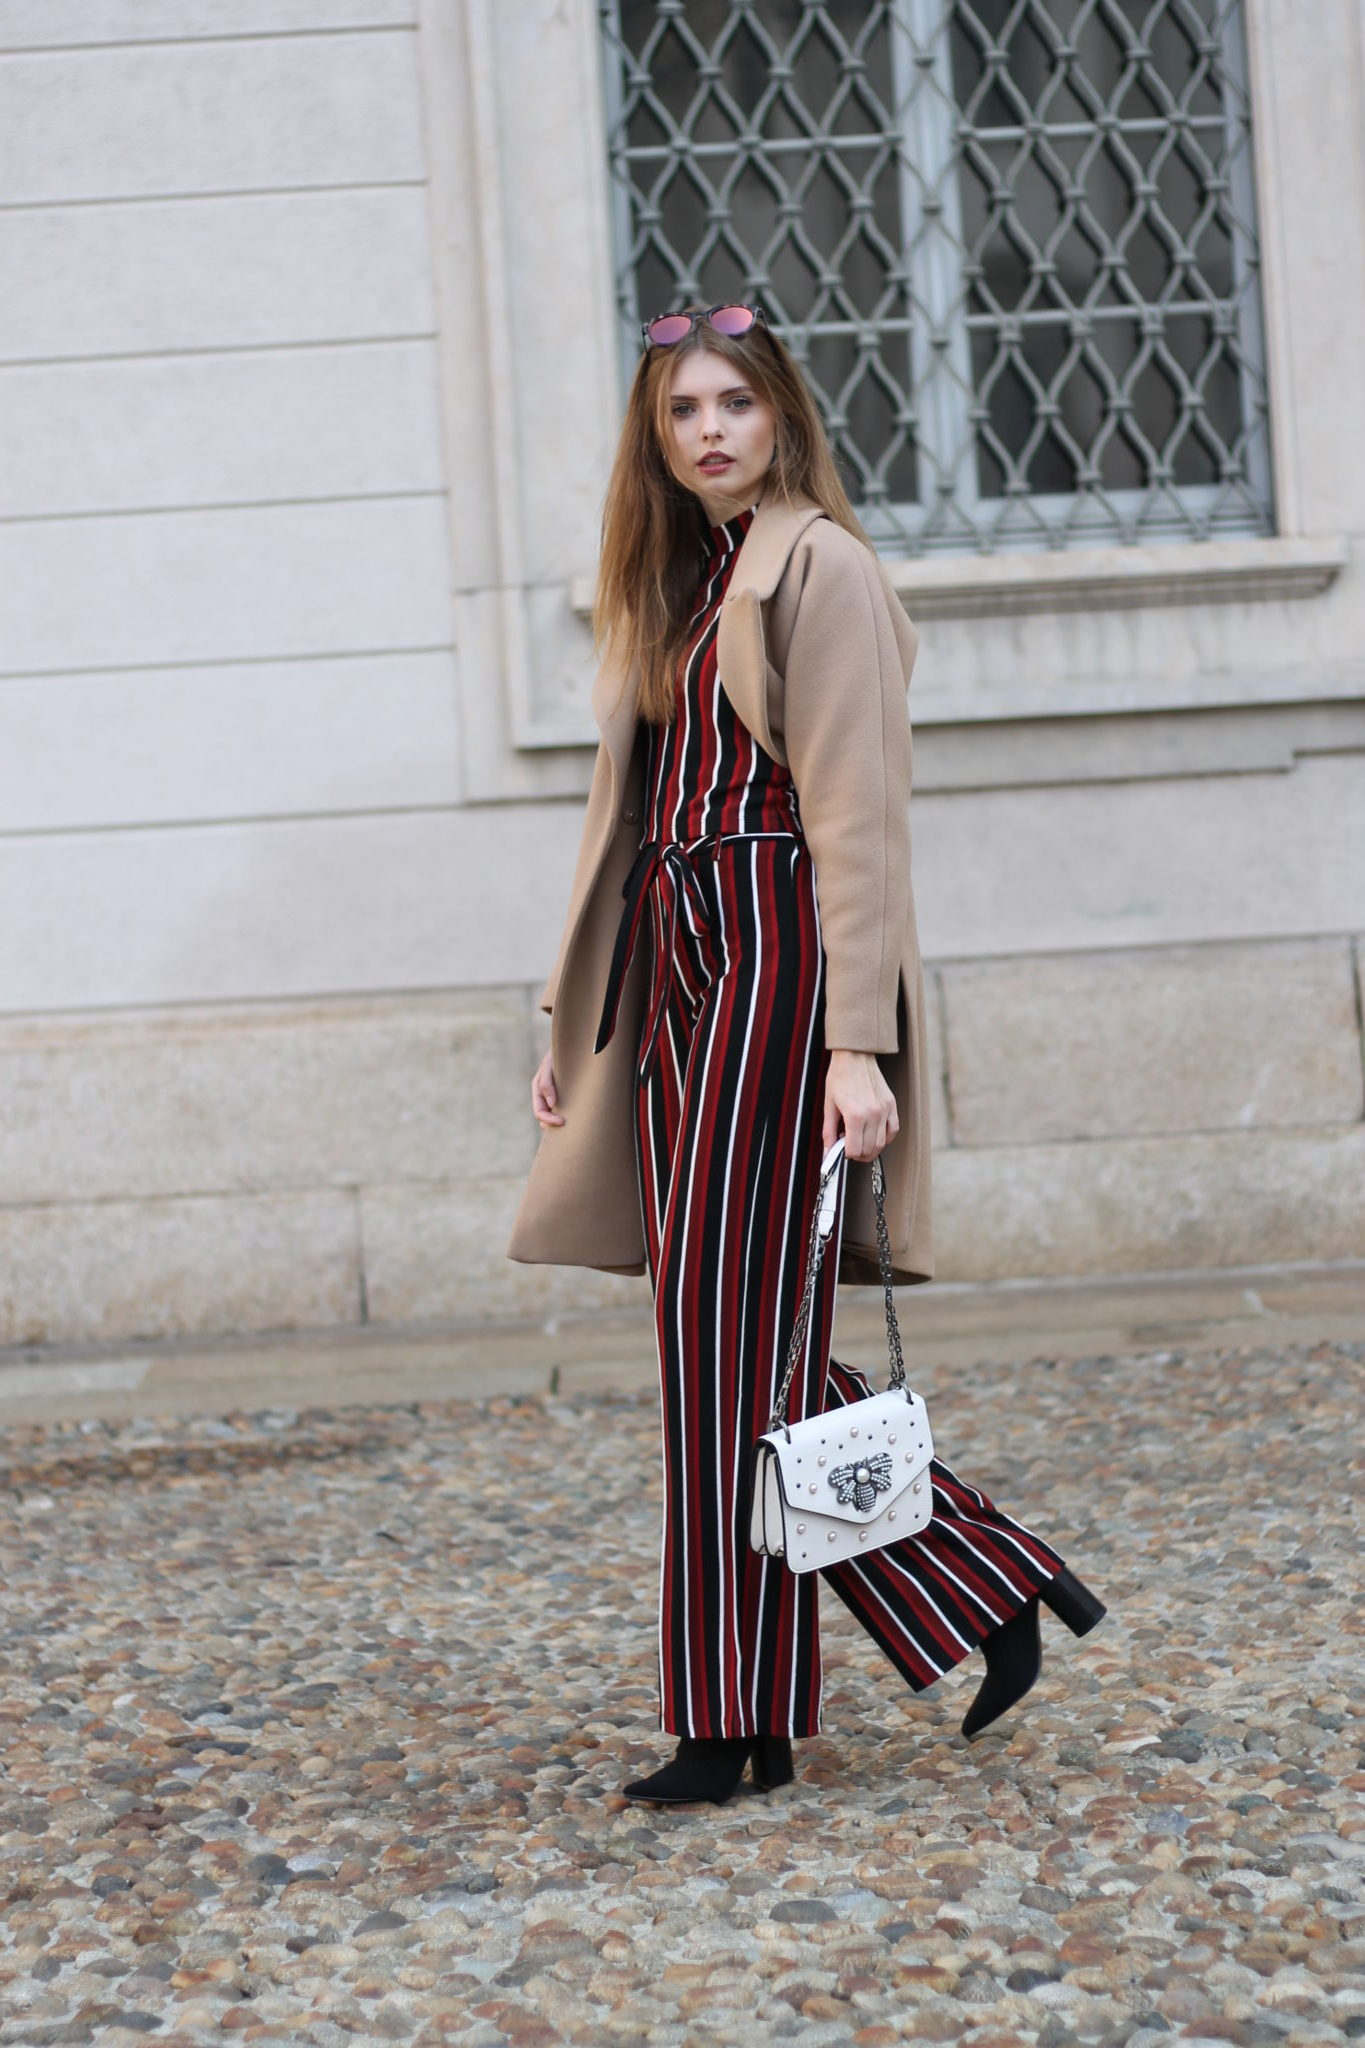 IMG 1663 e1519228385320 - BOLD STRIPED JUMPSUIT I MILAN